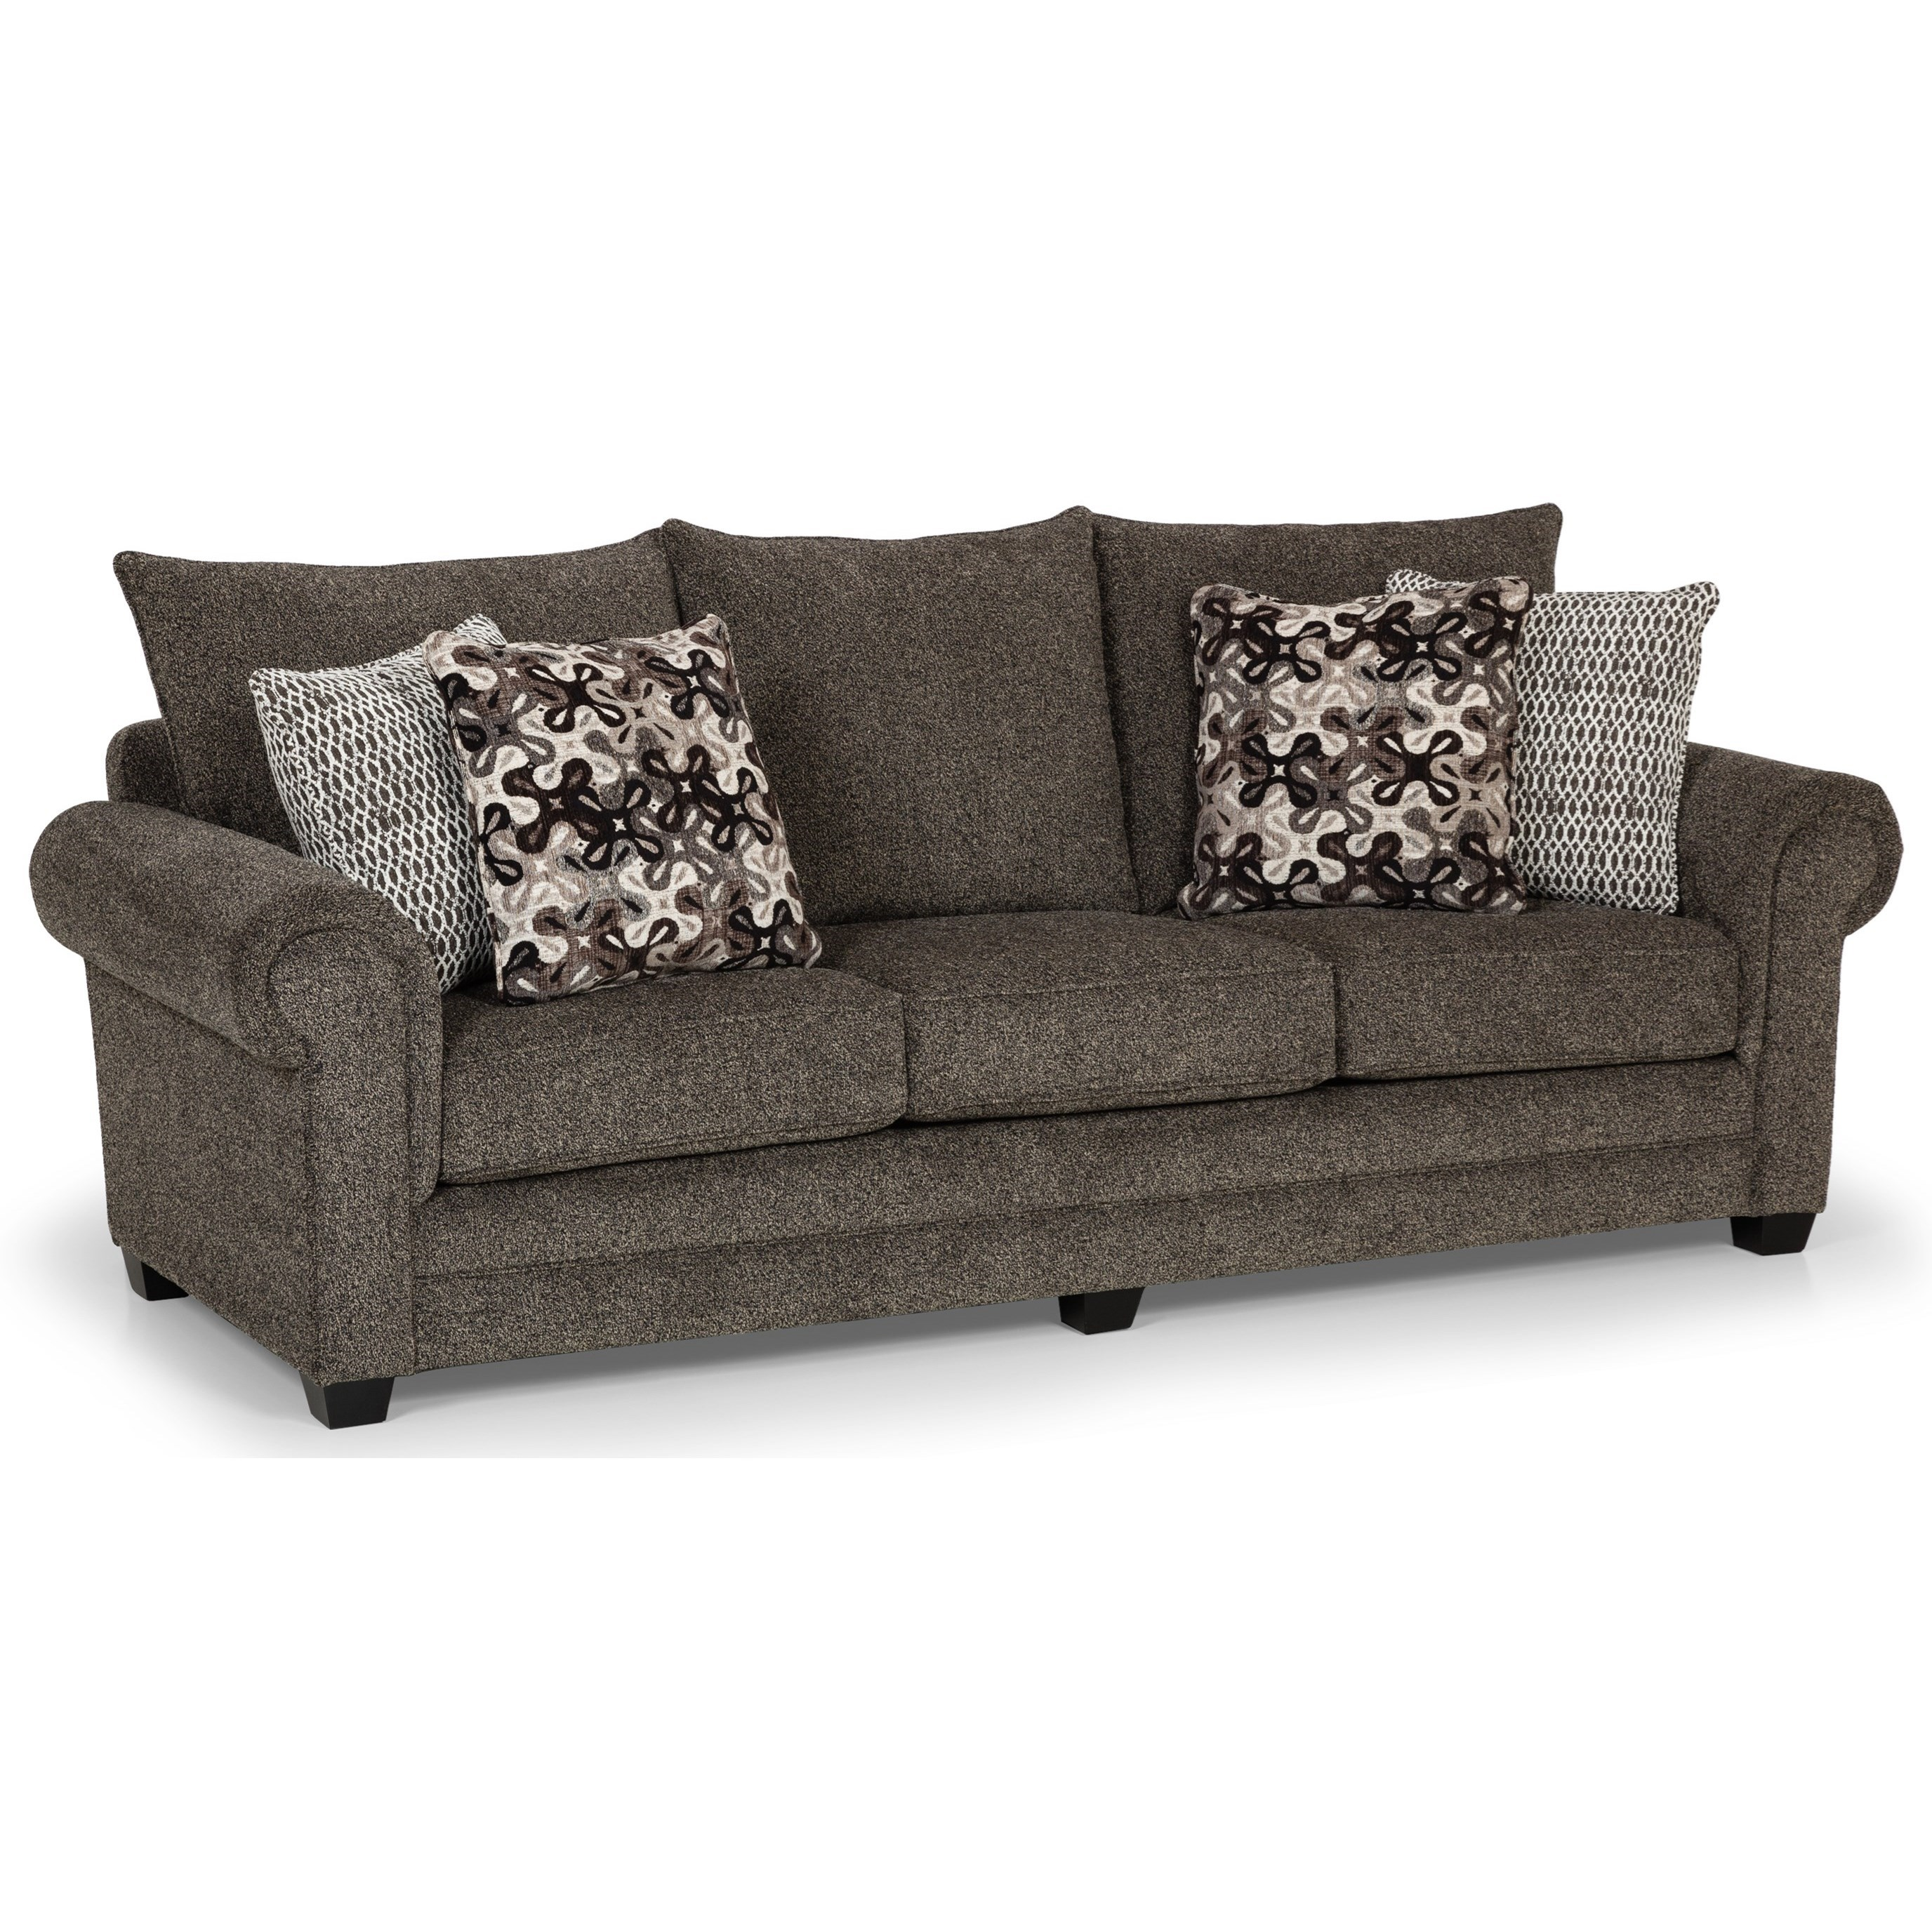 527 Sofa by Stanton at Wilson's Furniture